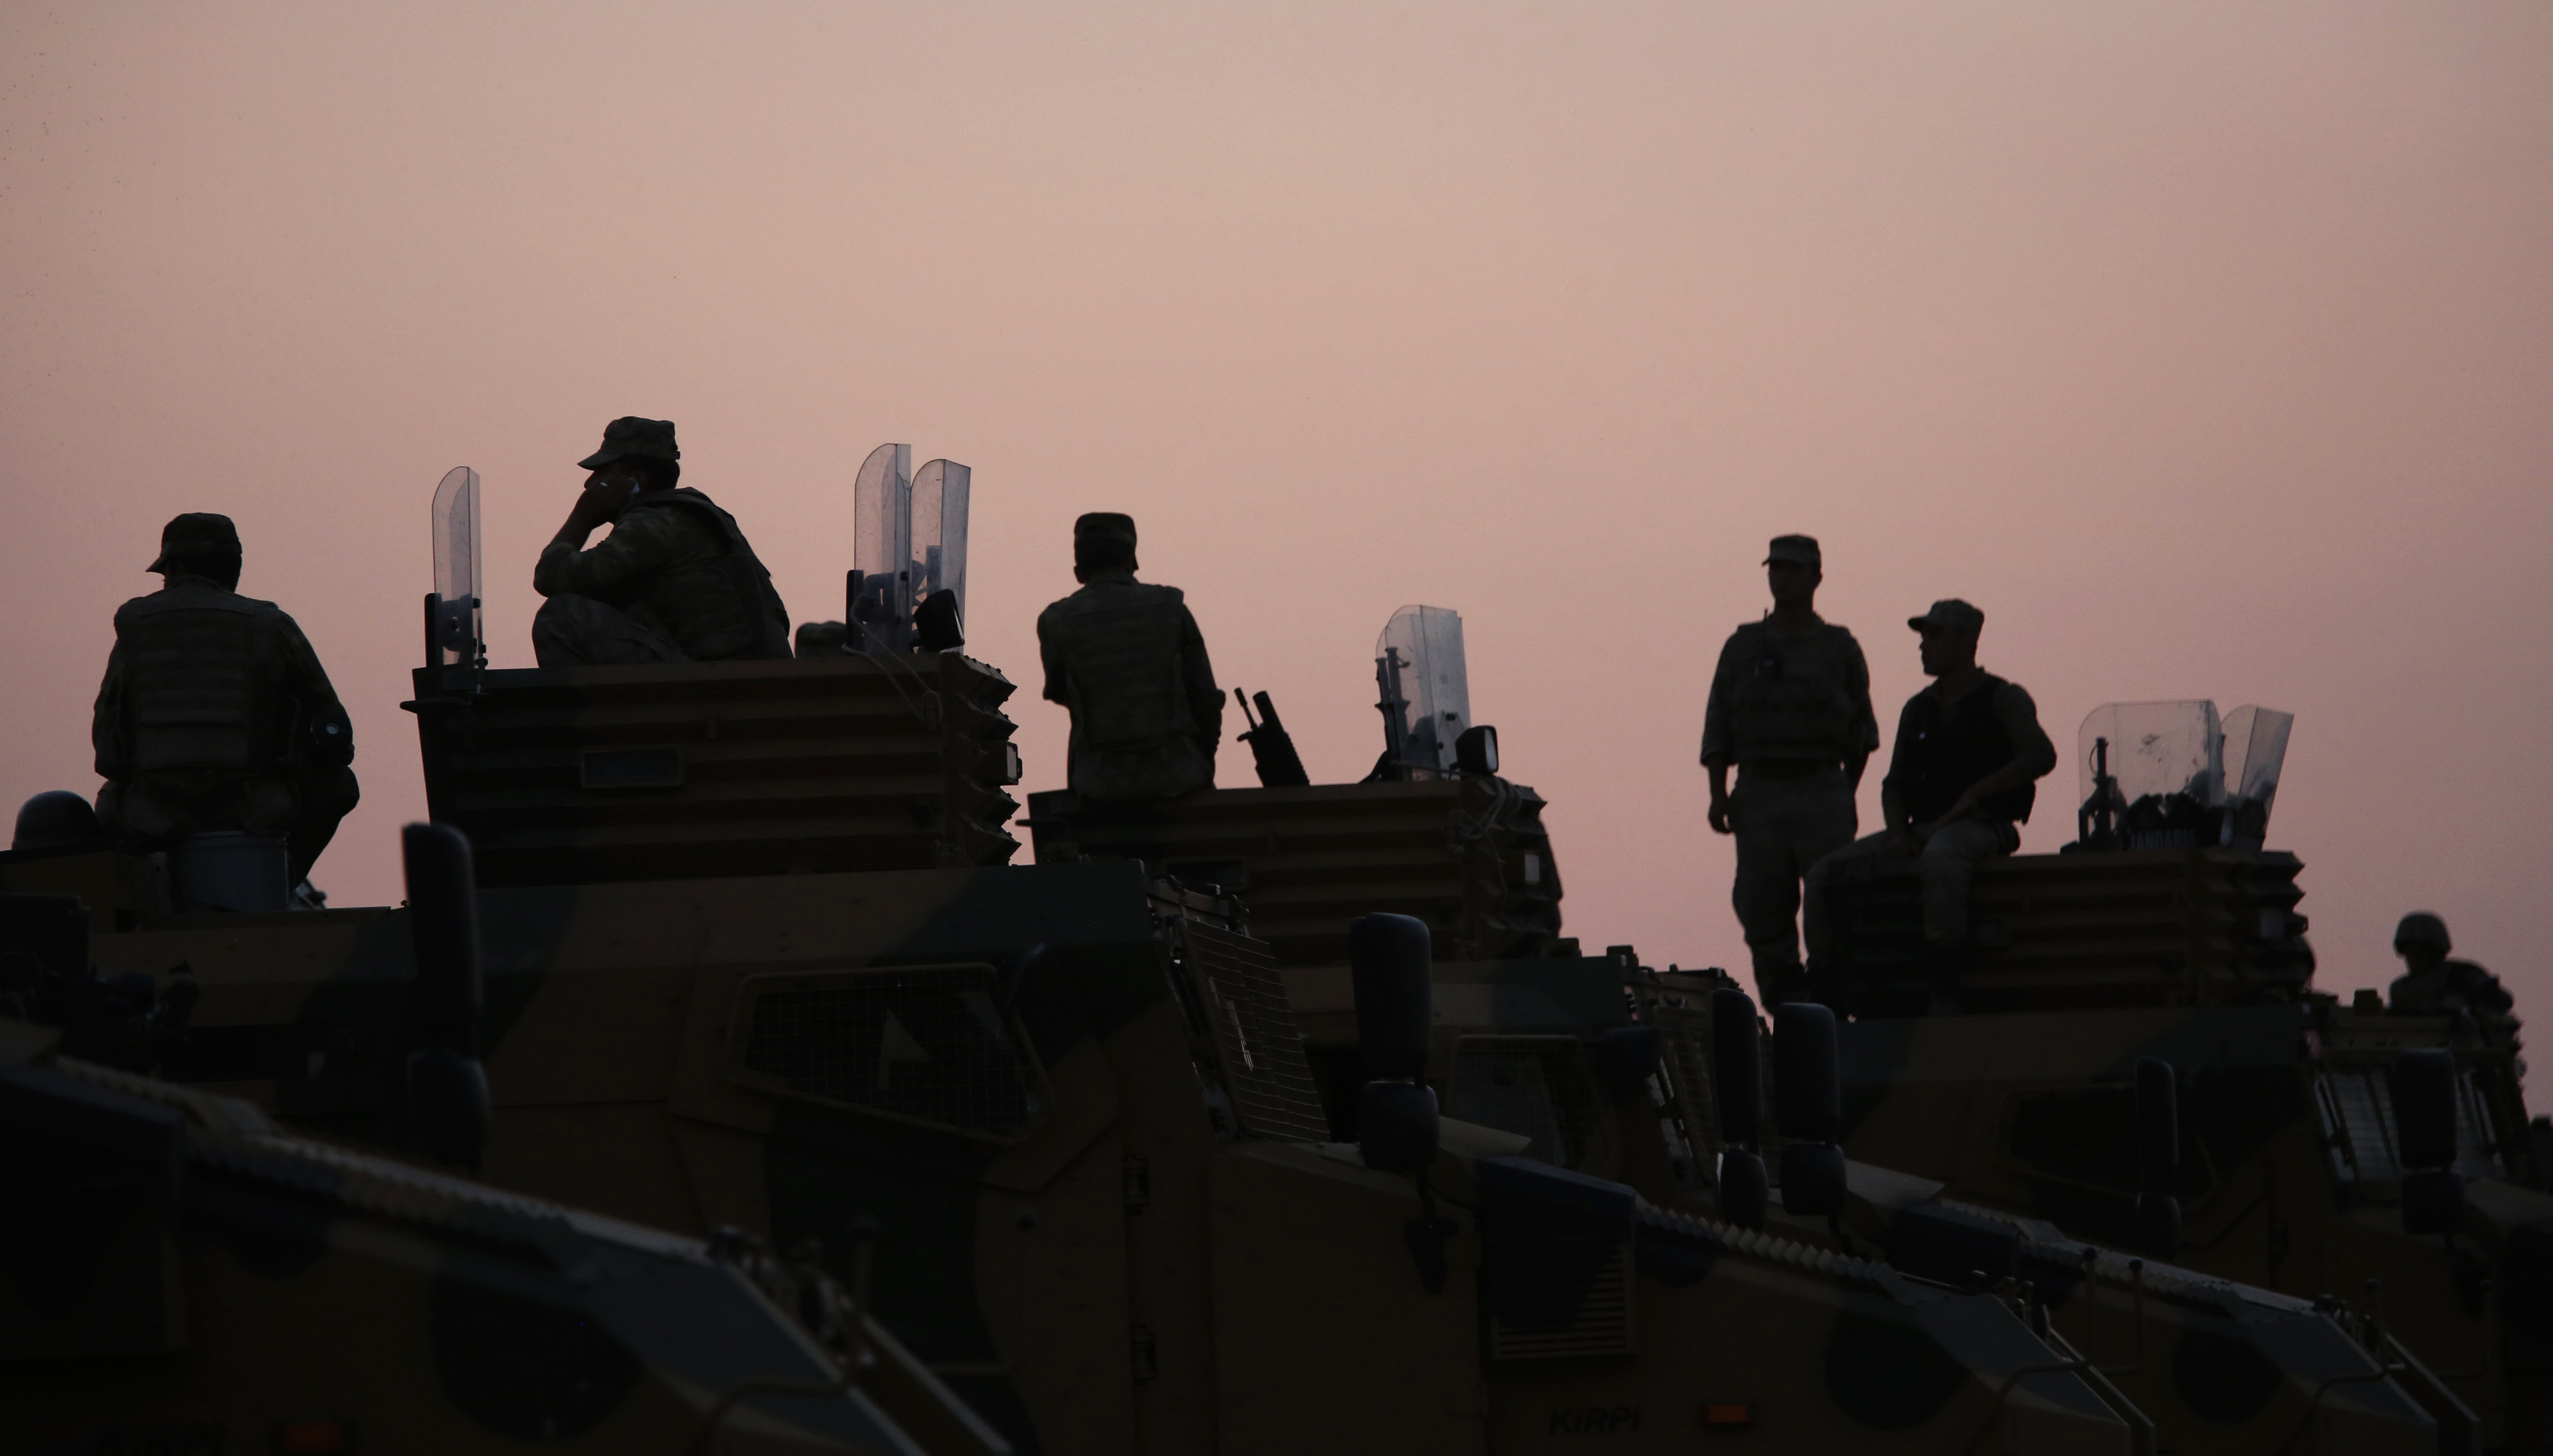 Turkish soldiers are silhouetted atop armoured vehicles near the Mursitpinar border crossing on the Turkish-Syrian border on October 3, 2014.